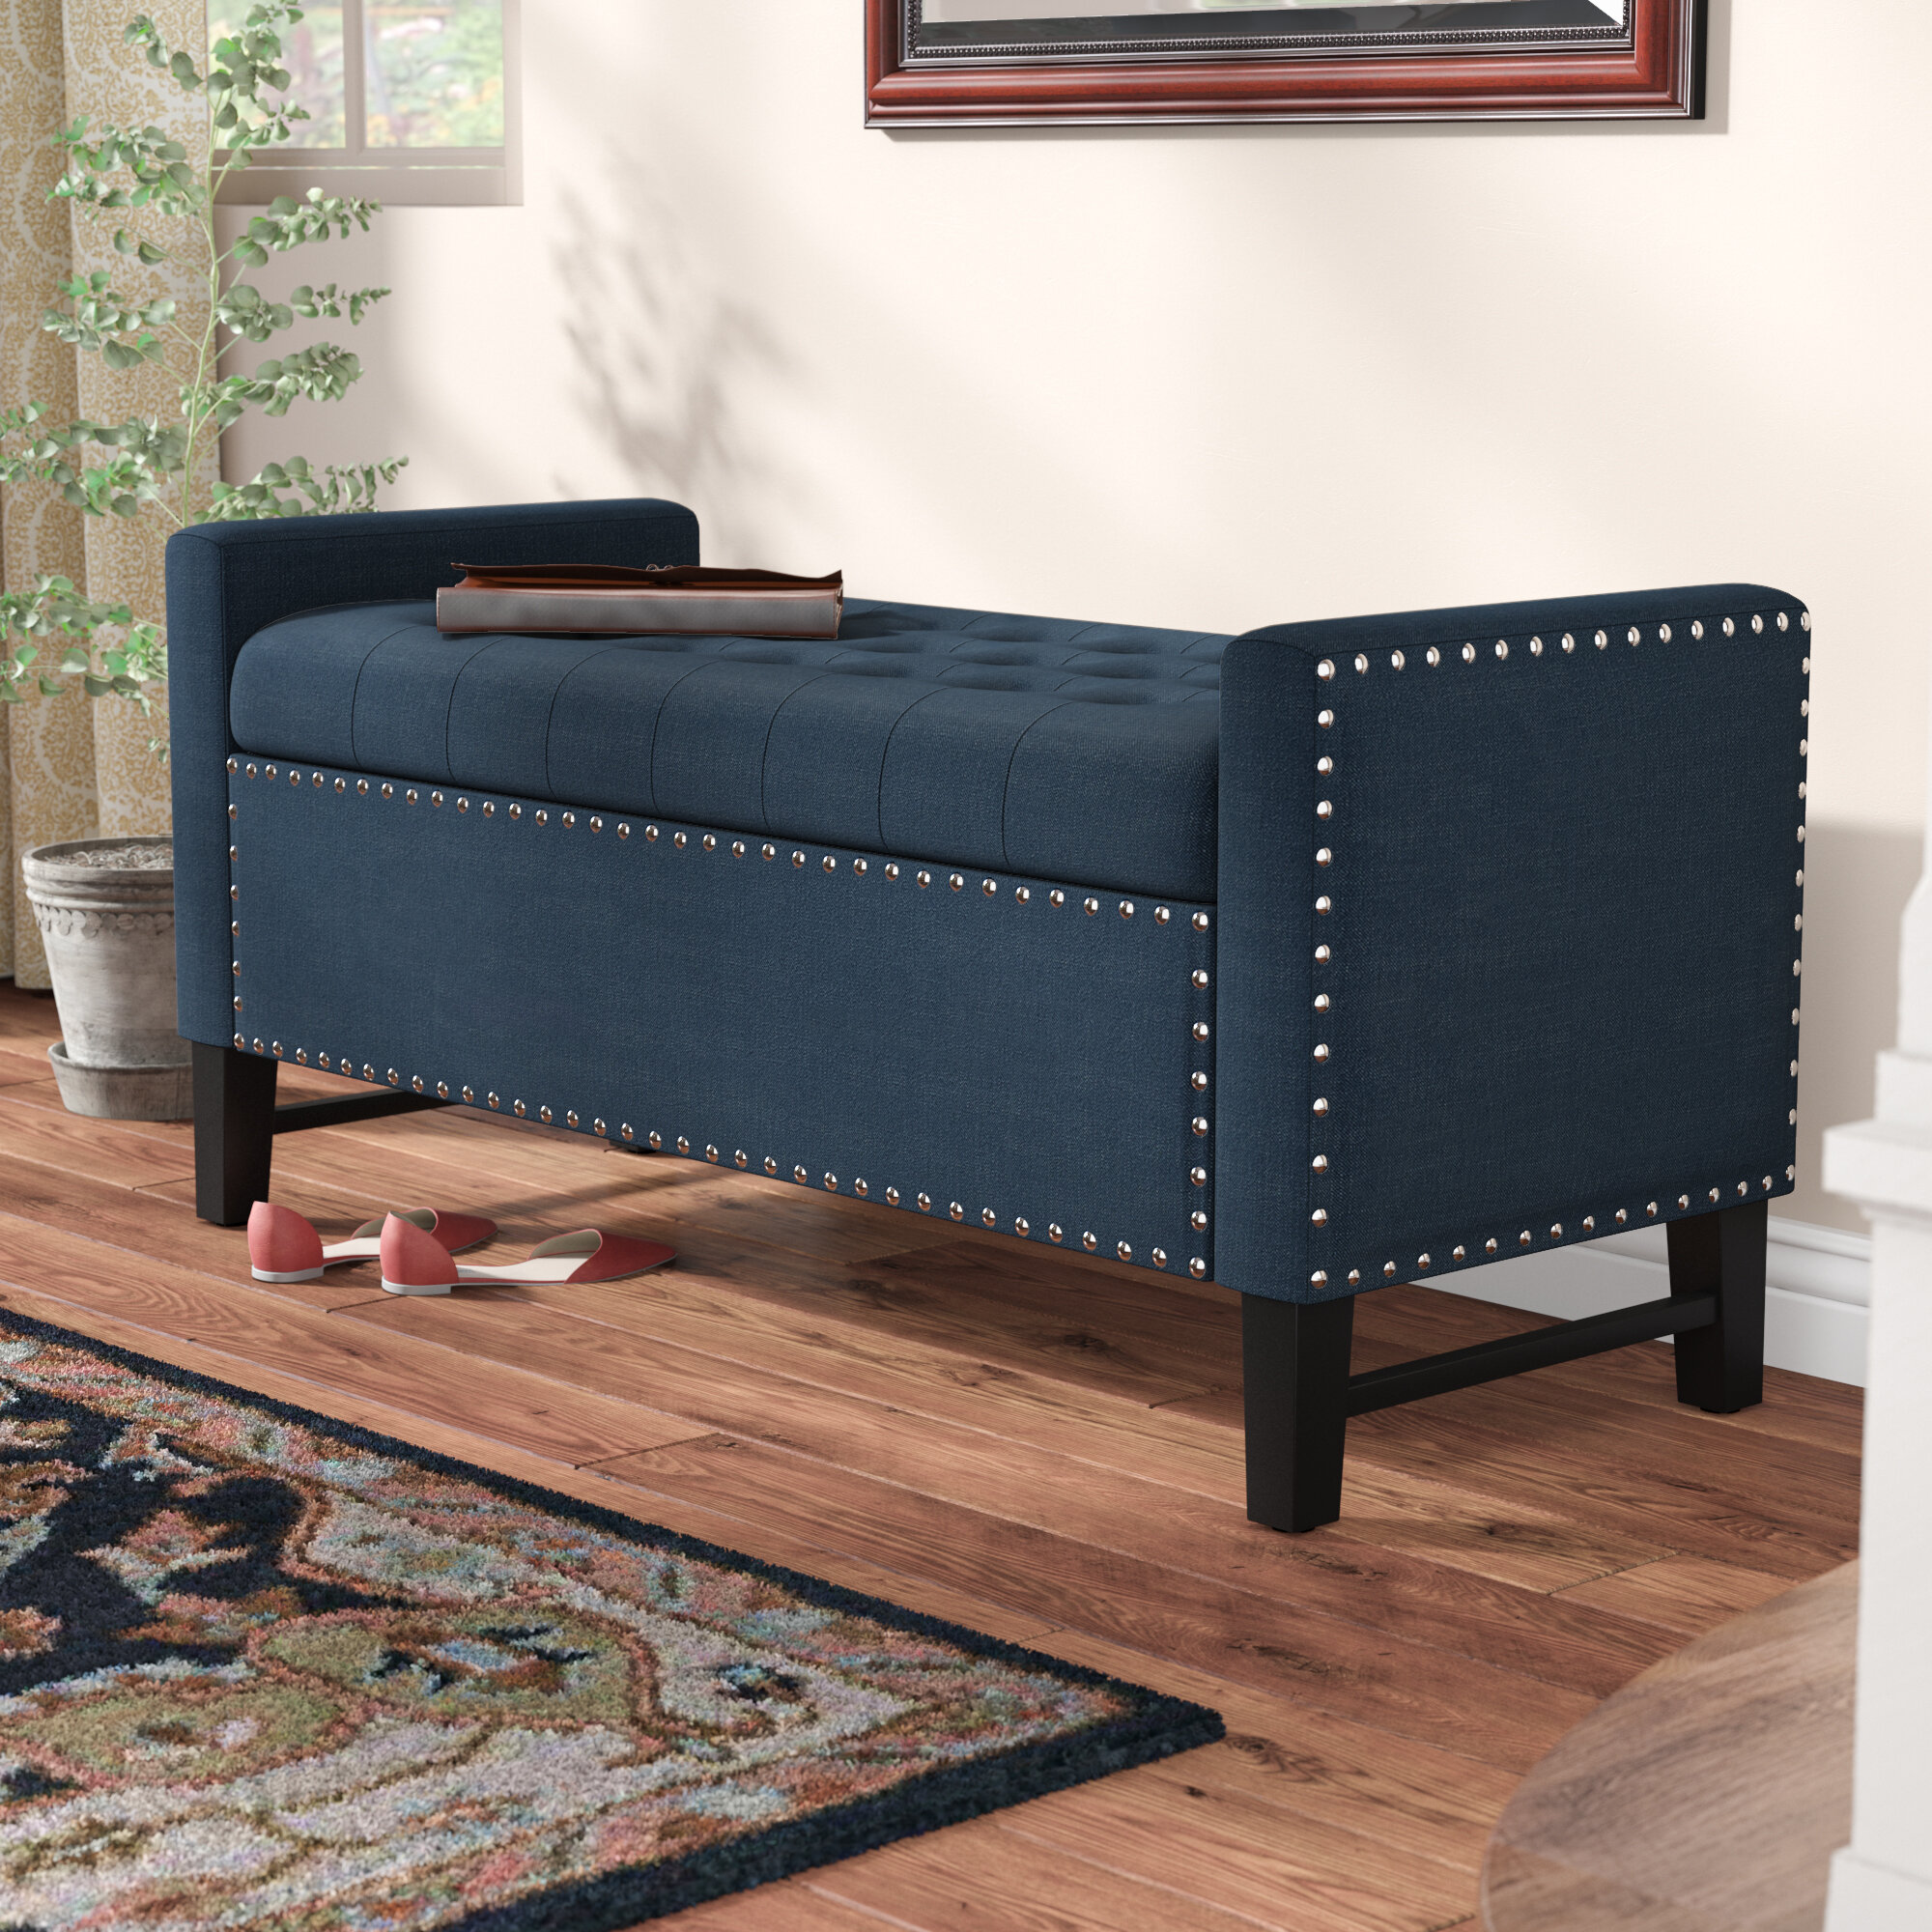 button today house free overstock product sofa shipping garden republic design tufted bench home deep settee